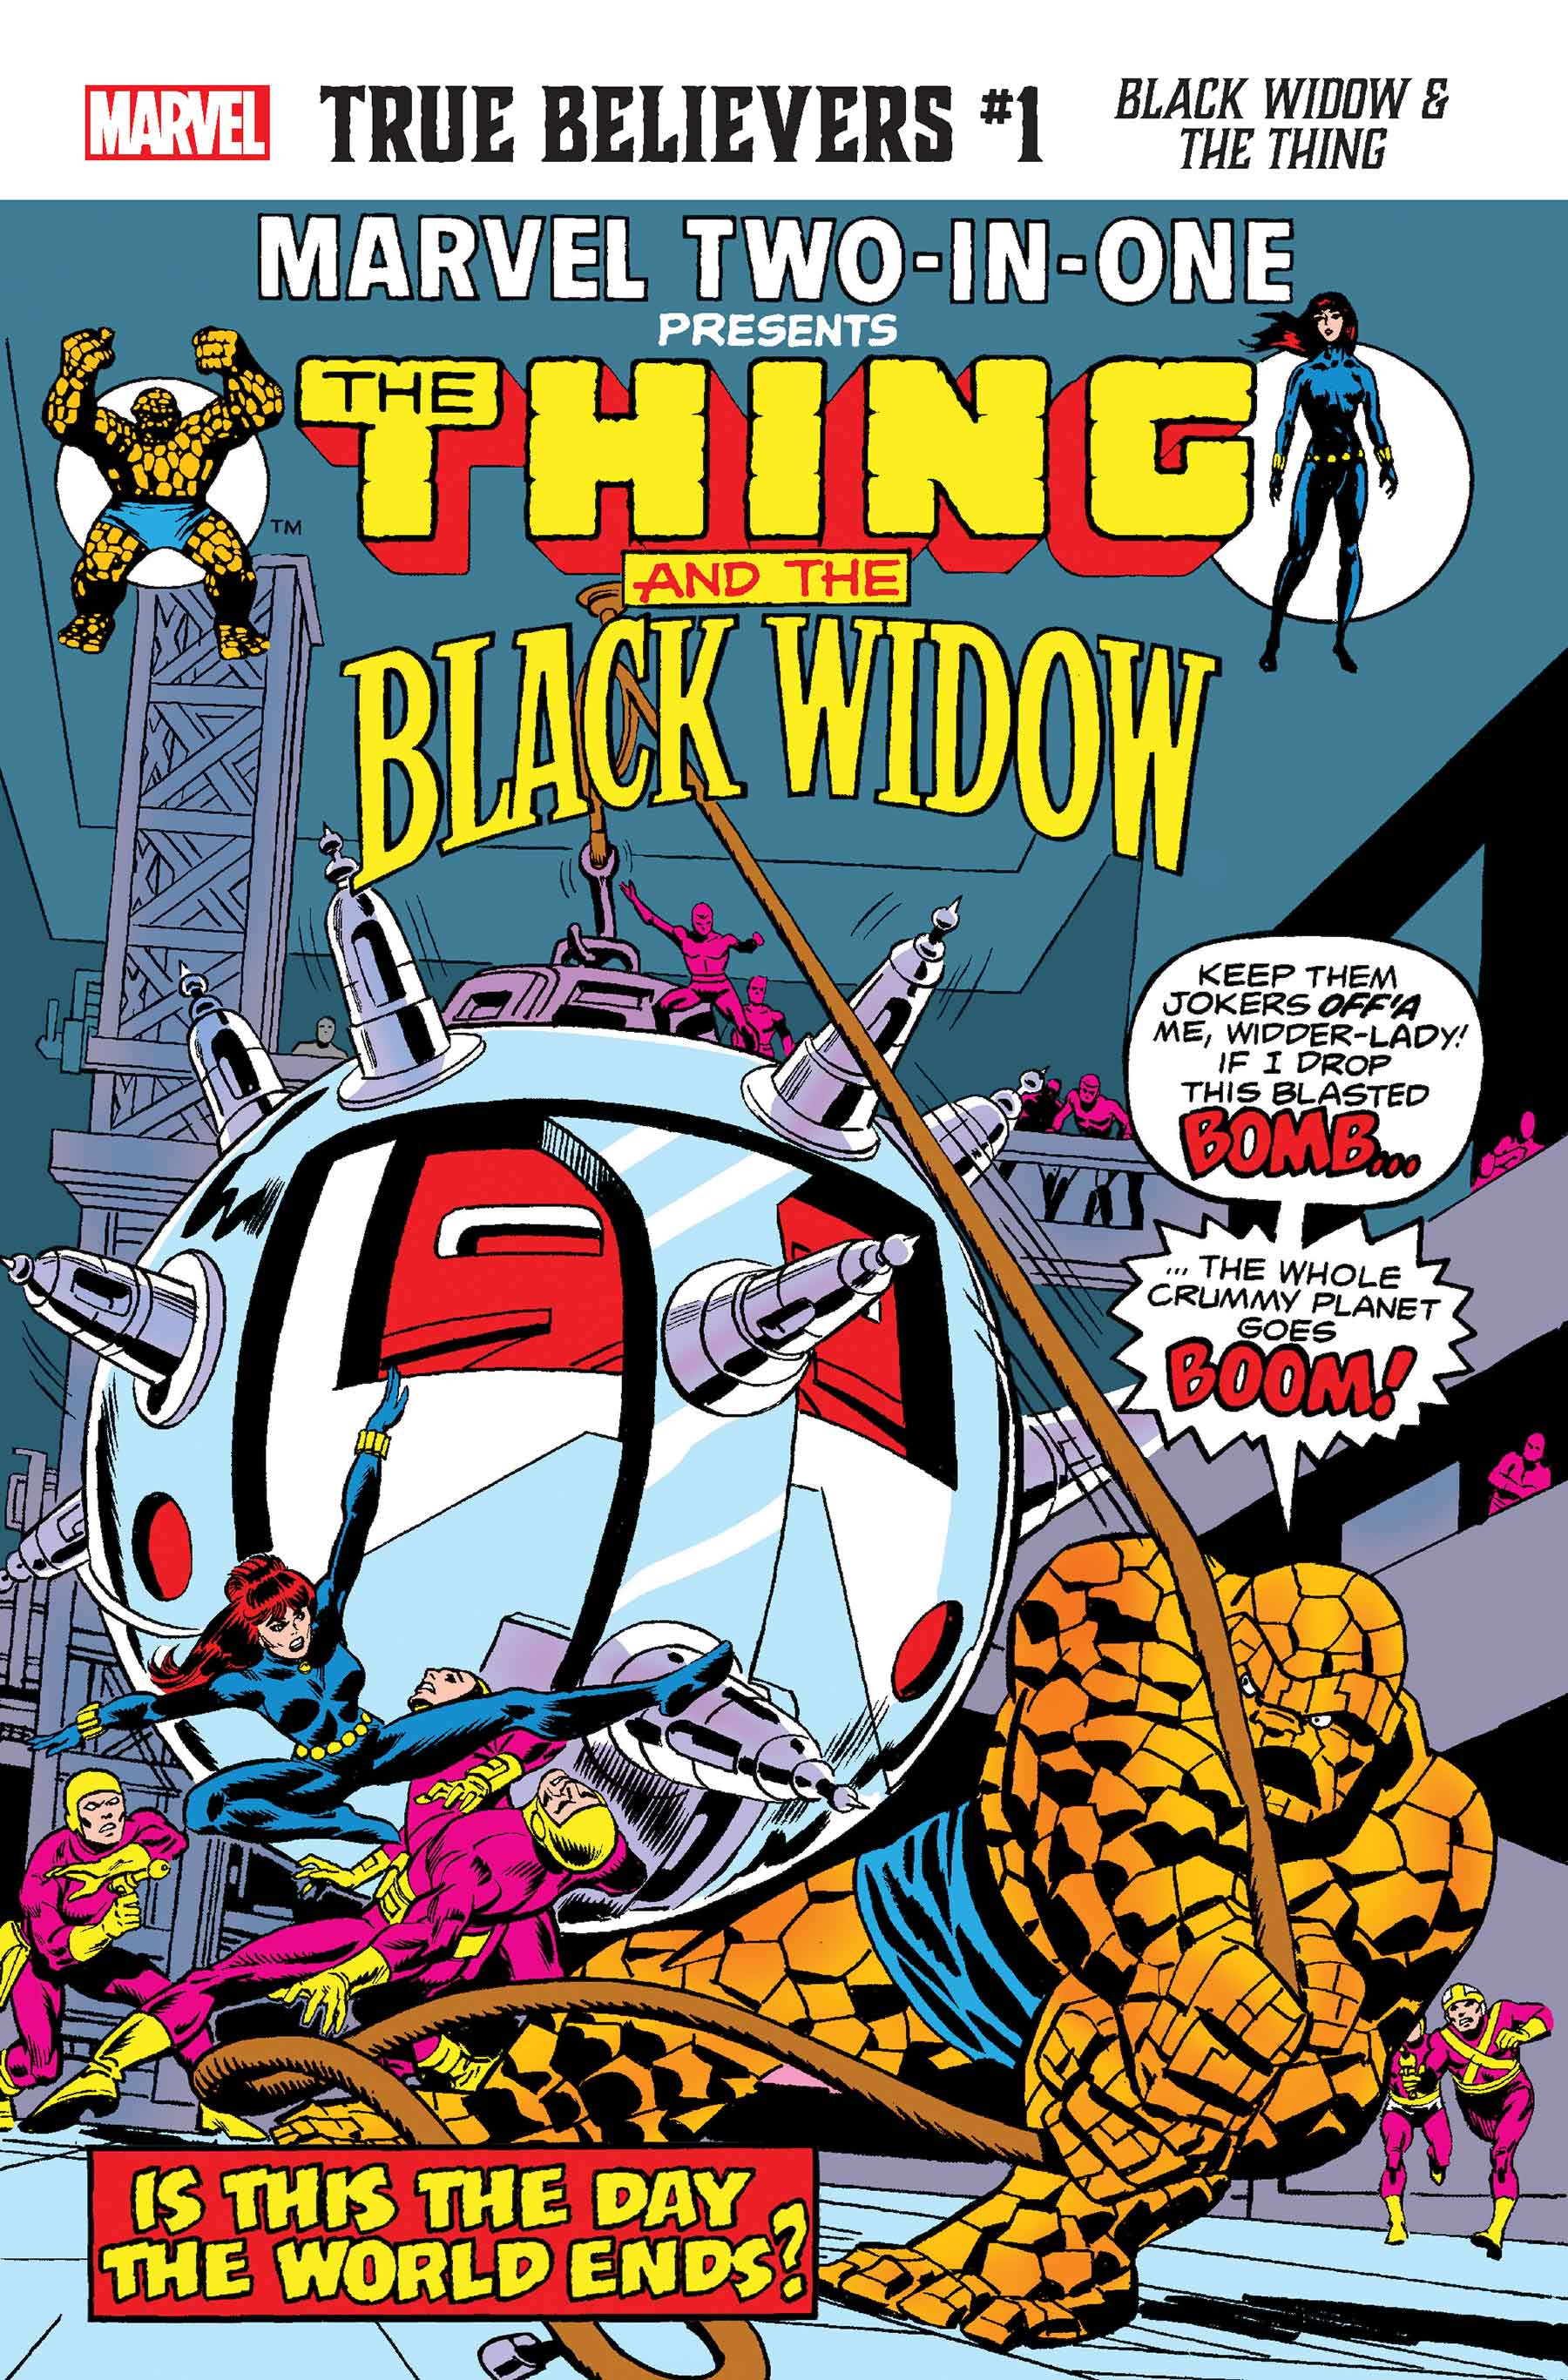 TRUE BELIEVERS: BLACK WIDOW & THE THING 1 (2020) #1